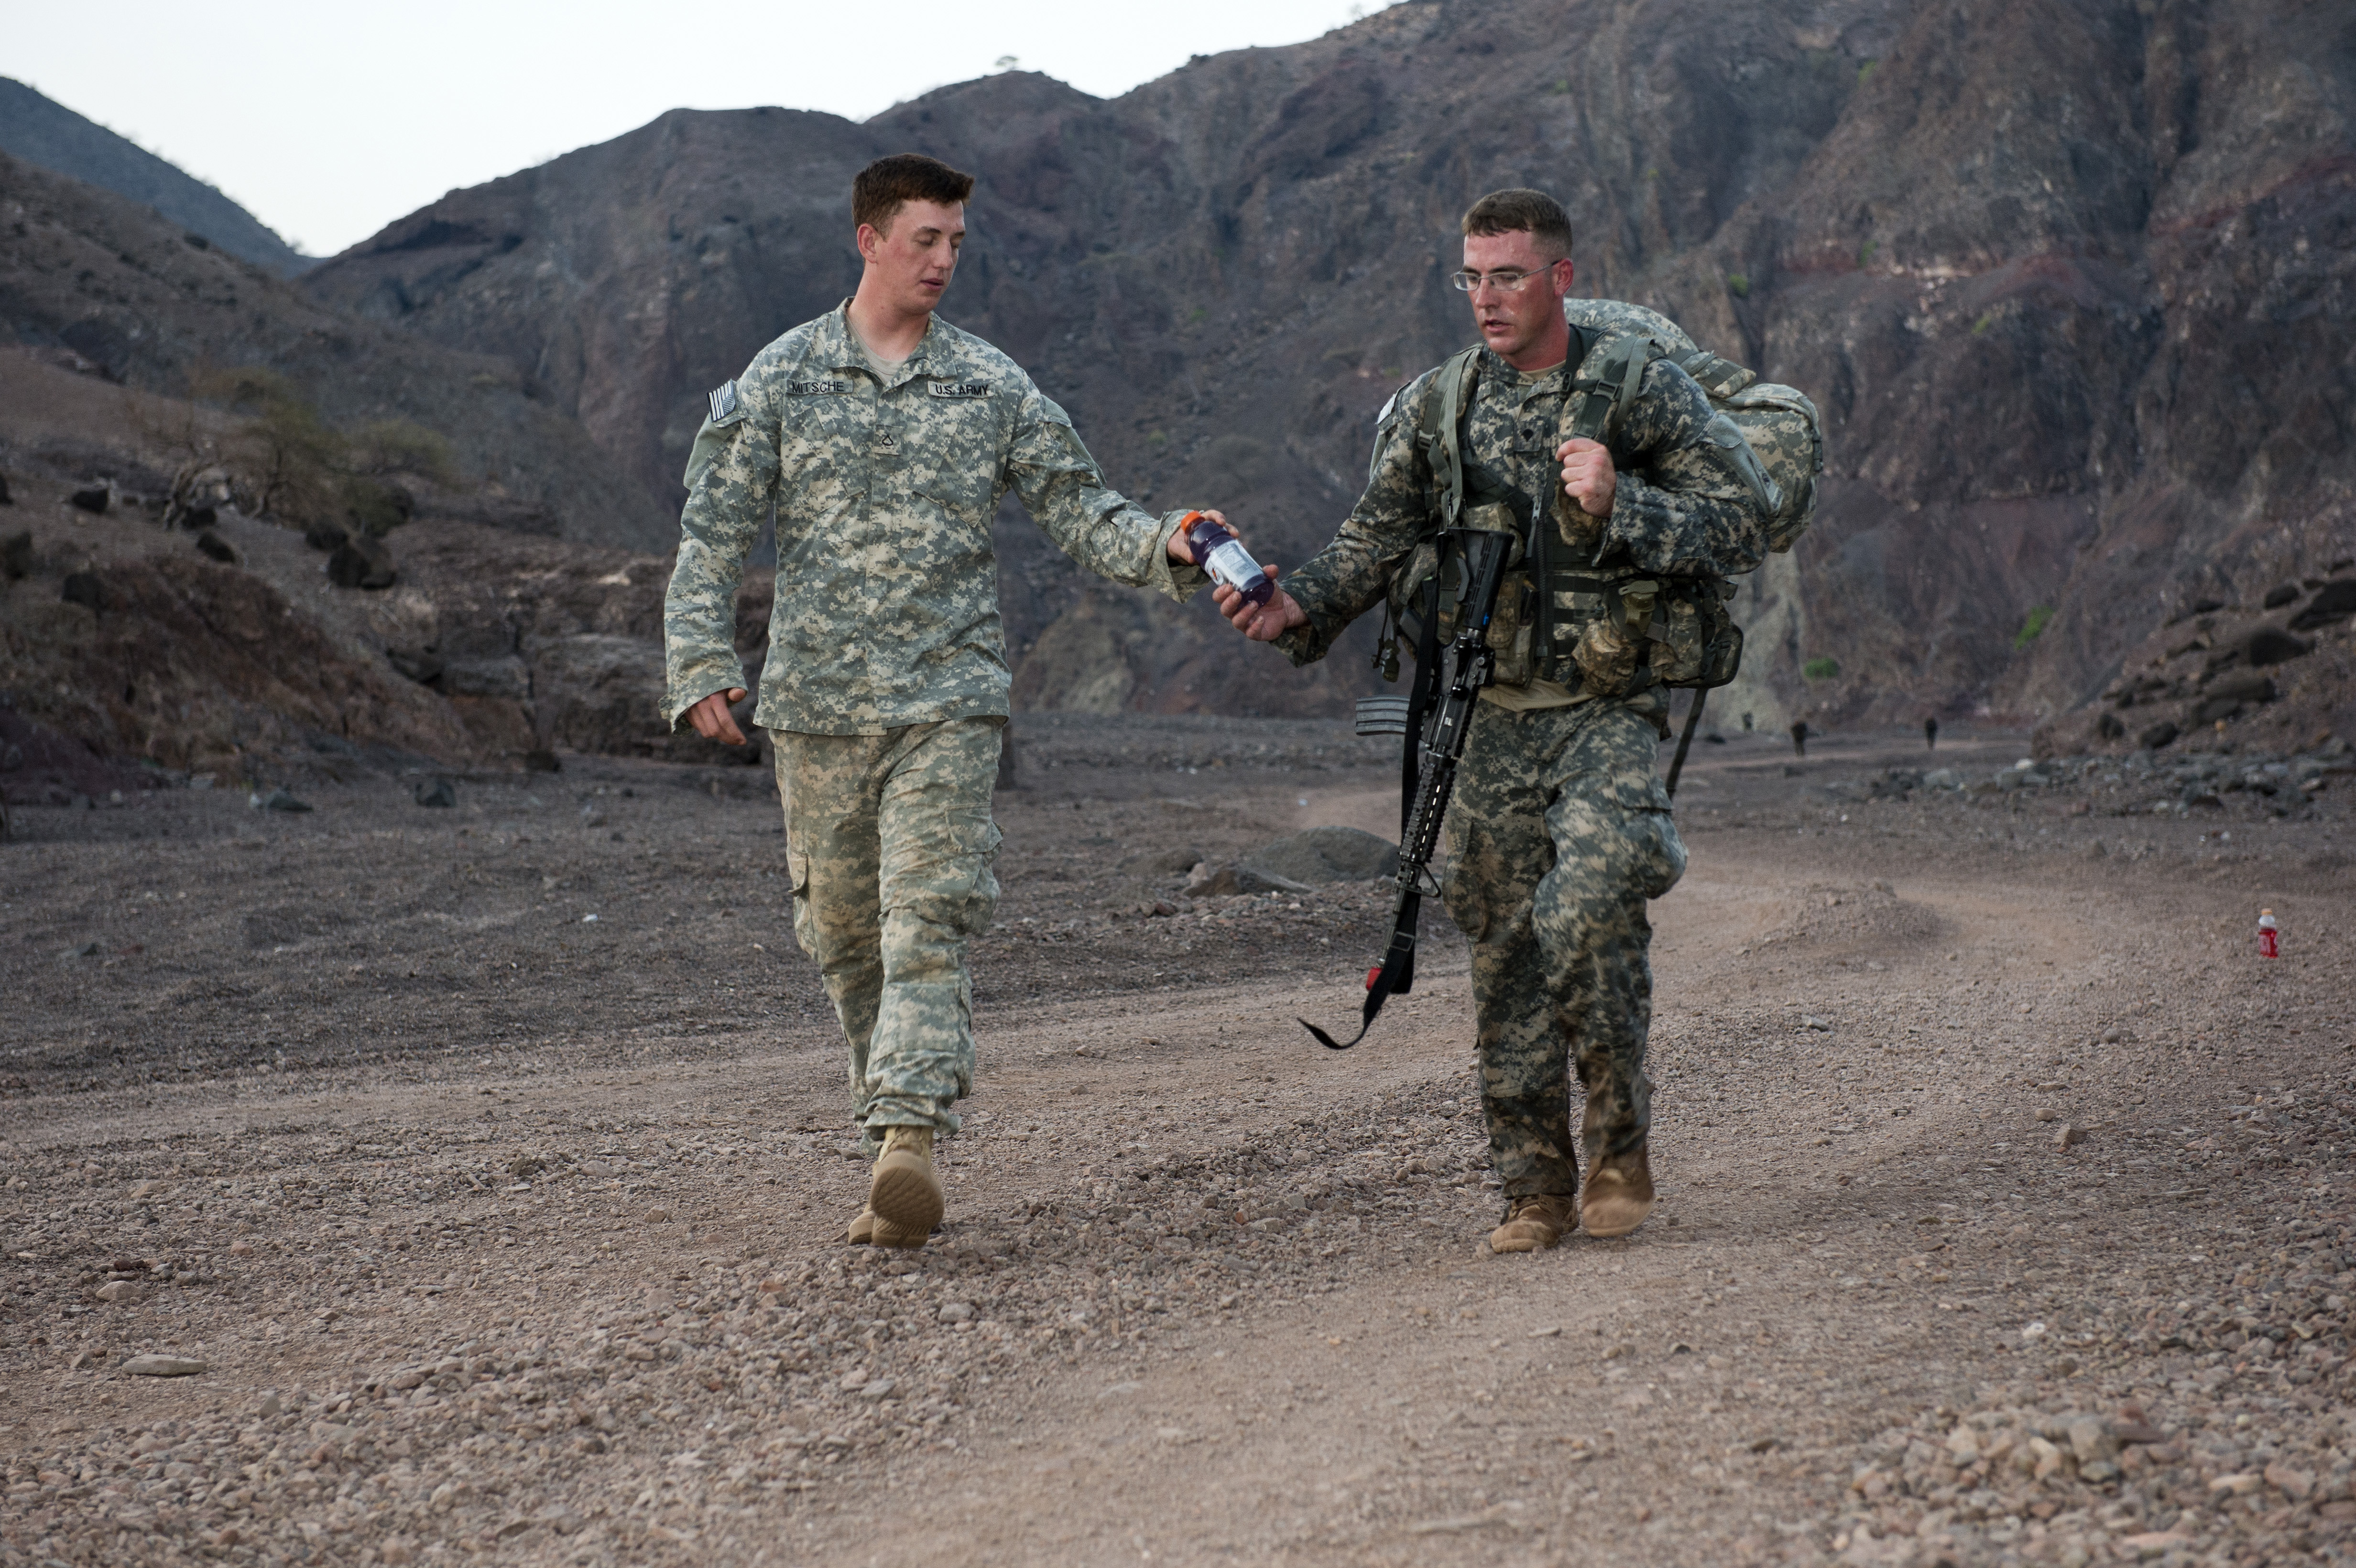 A U.S. Army soldier from the 1st Battalion, 77th Armor Regiment is handed a drink from a fellow 1/77 AR Rgt. Member, during a 12-mile ruck march as part of the Expert Infantry Badge assessment at Arta, Djibouti, April 24, 2015. Candidates for the EIB had to complete the march in less than three hours over unfamiliar terrain to avoid disqualification. (U.S. Air Force photo by Staff Sgt. Nathan Maysonet)